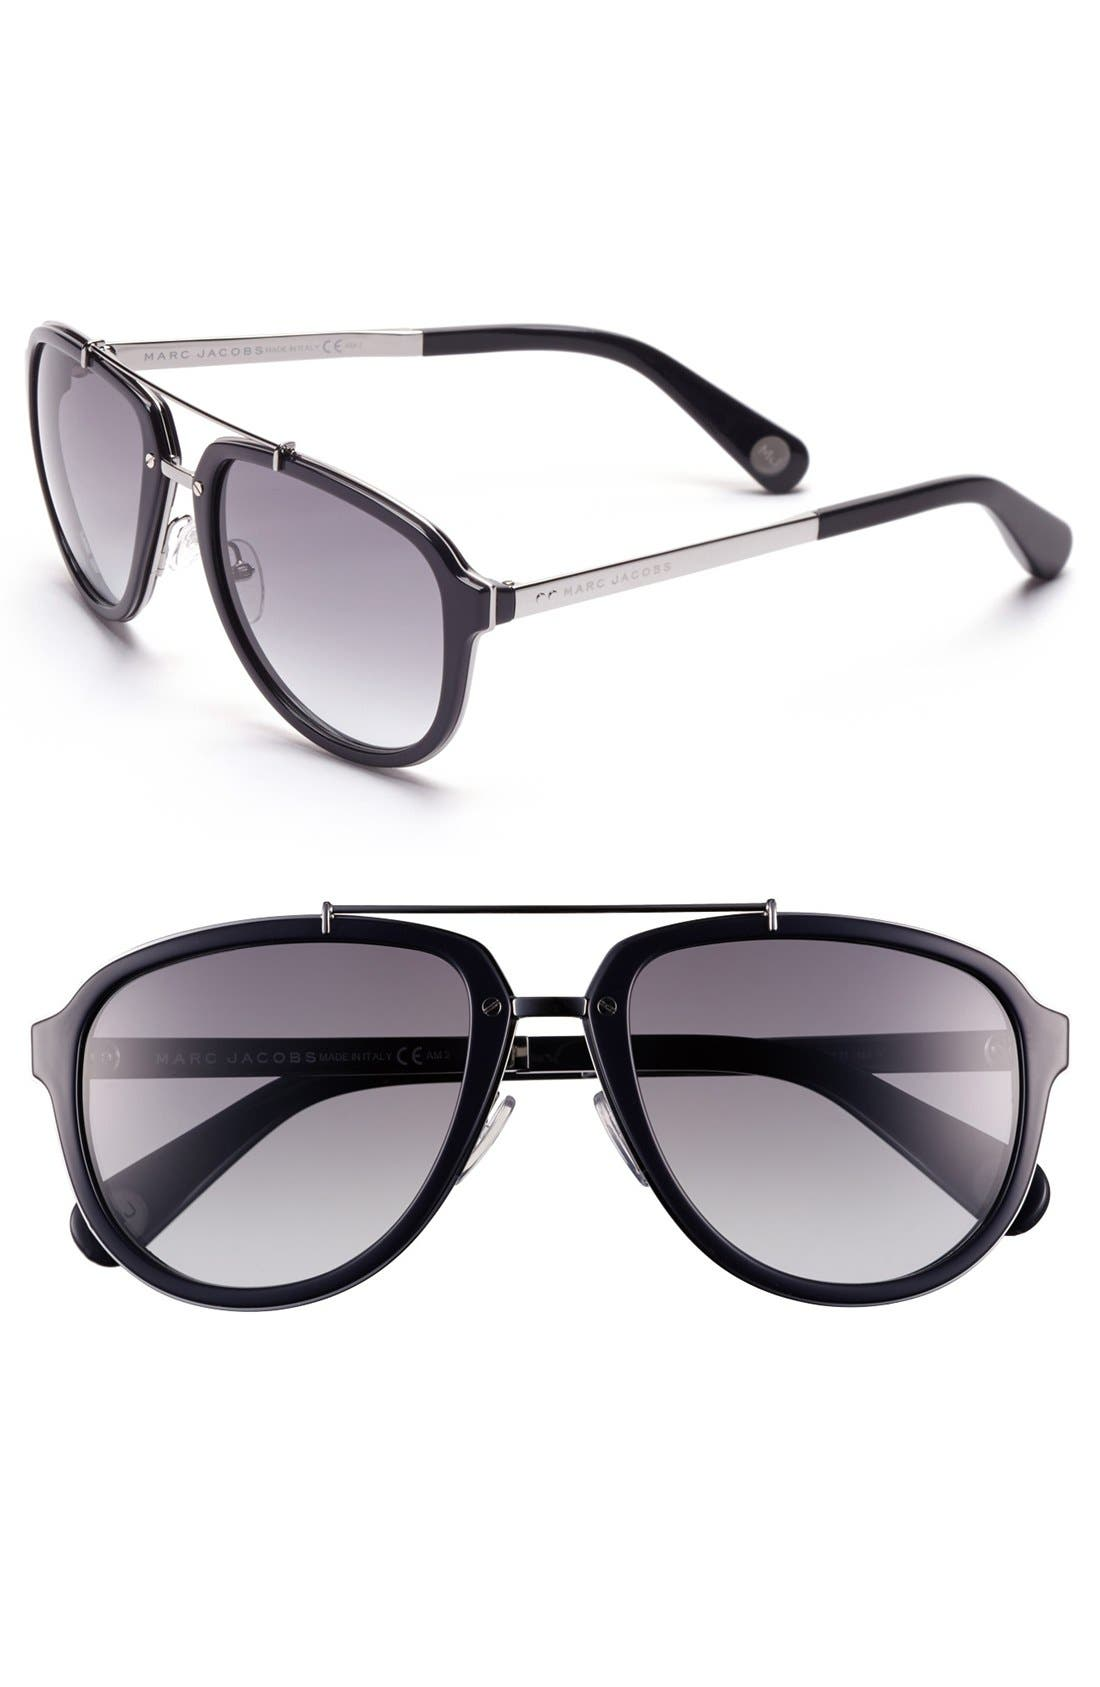 Main Image - MARC JACOBS 56mm Aviator Sunglasses